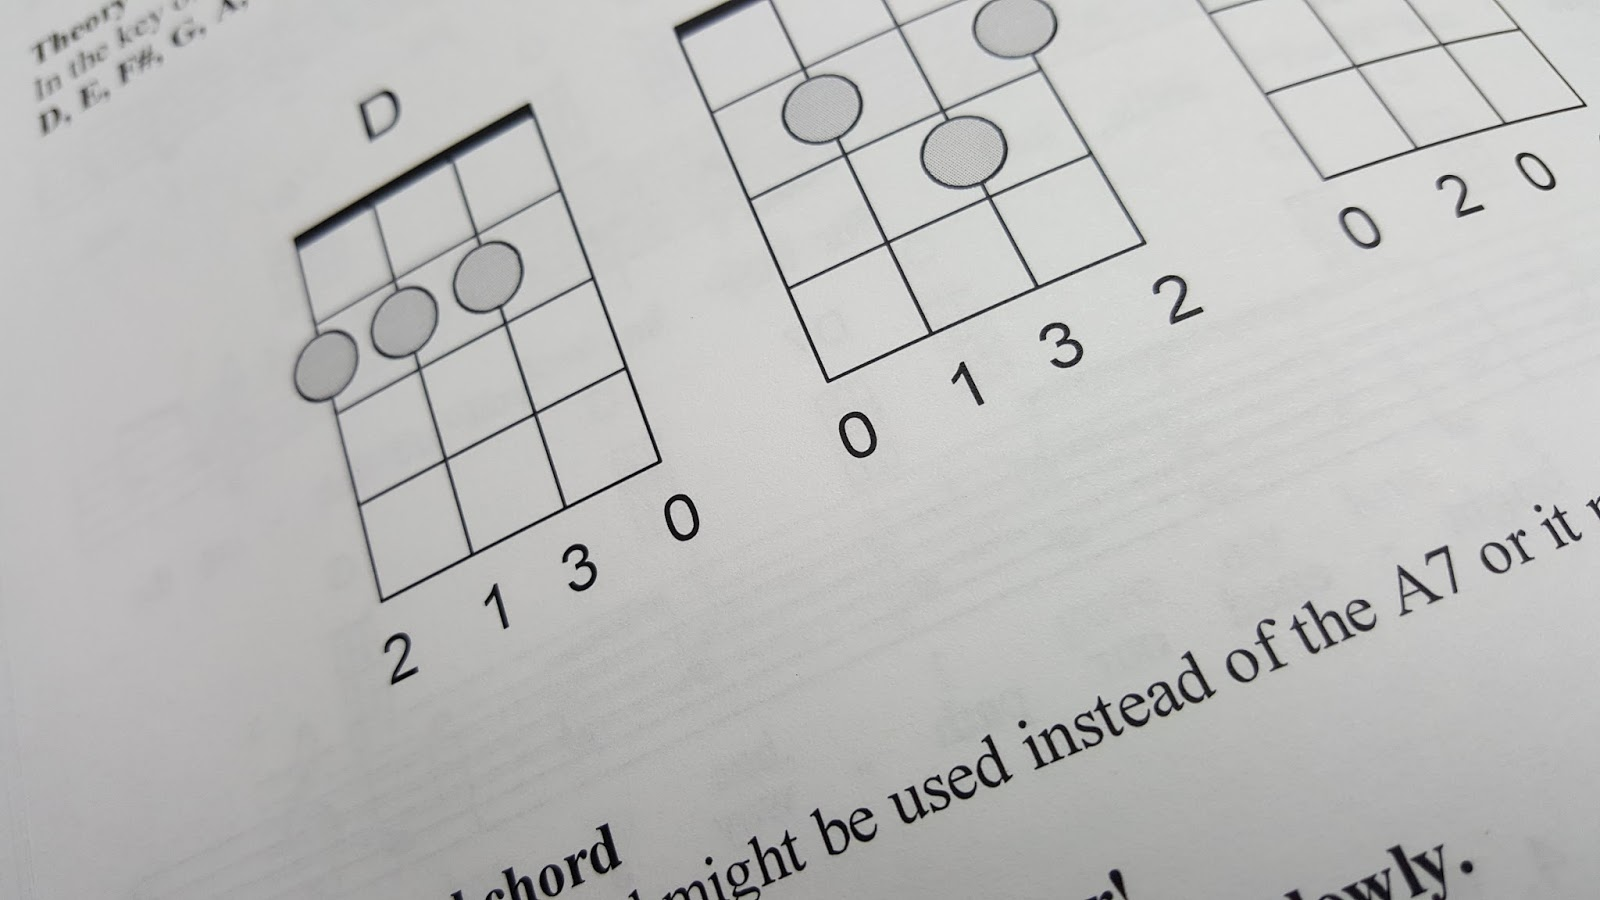 Ukulele Fingerstyle: What Child is This?